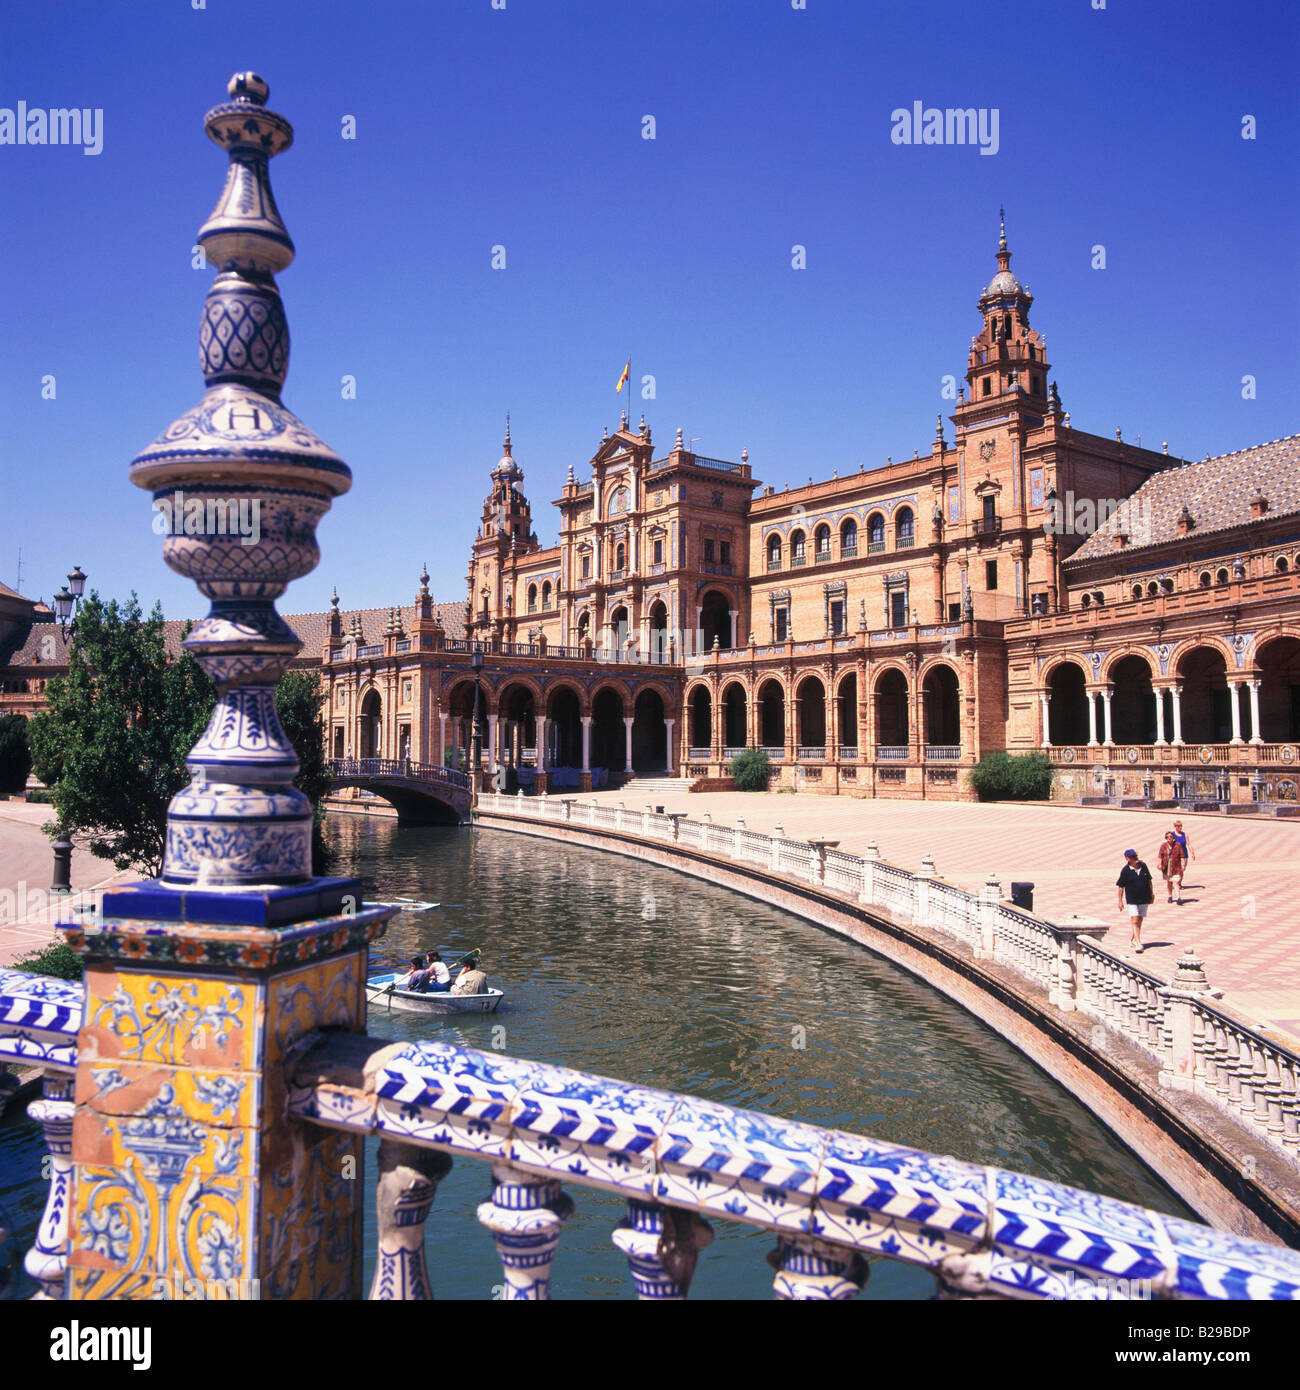 SPAIN SEVILLE Plaza de Espana Date 10 06 2008 Ref ZB648 114982 0001 COMPULSORY CREDIT World Pictures Photoshot - Stock Image